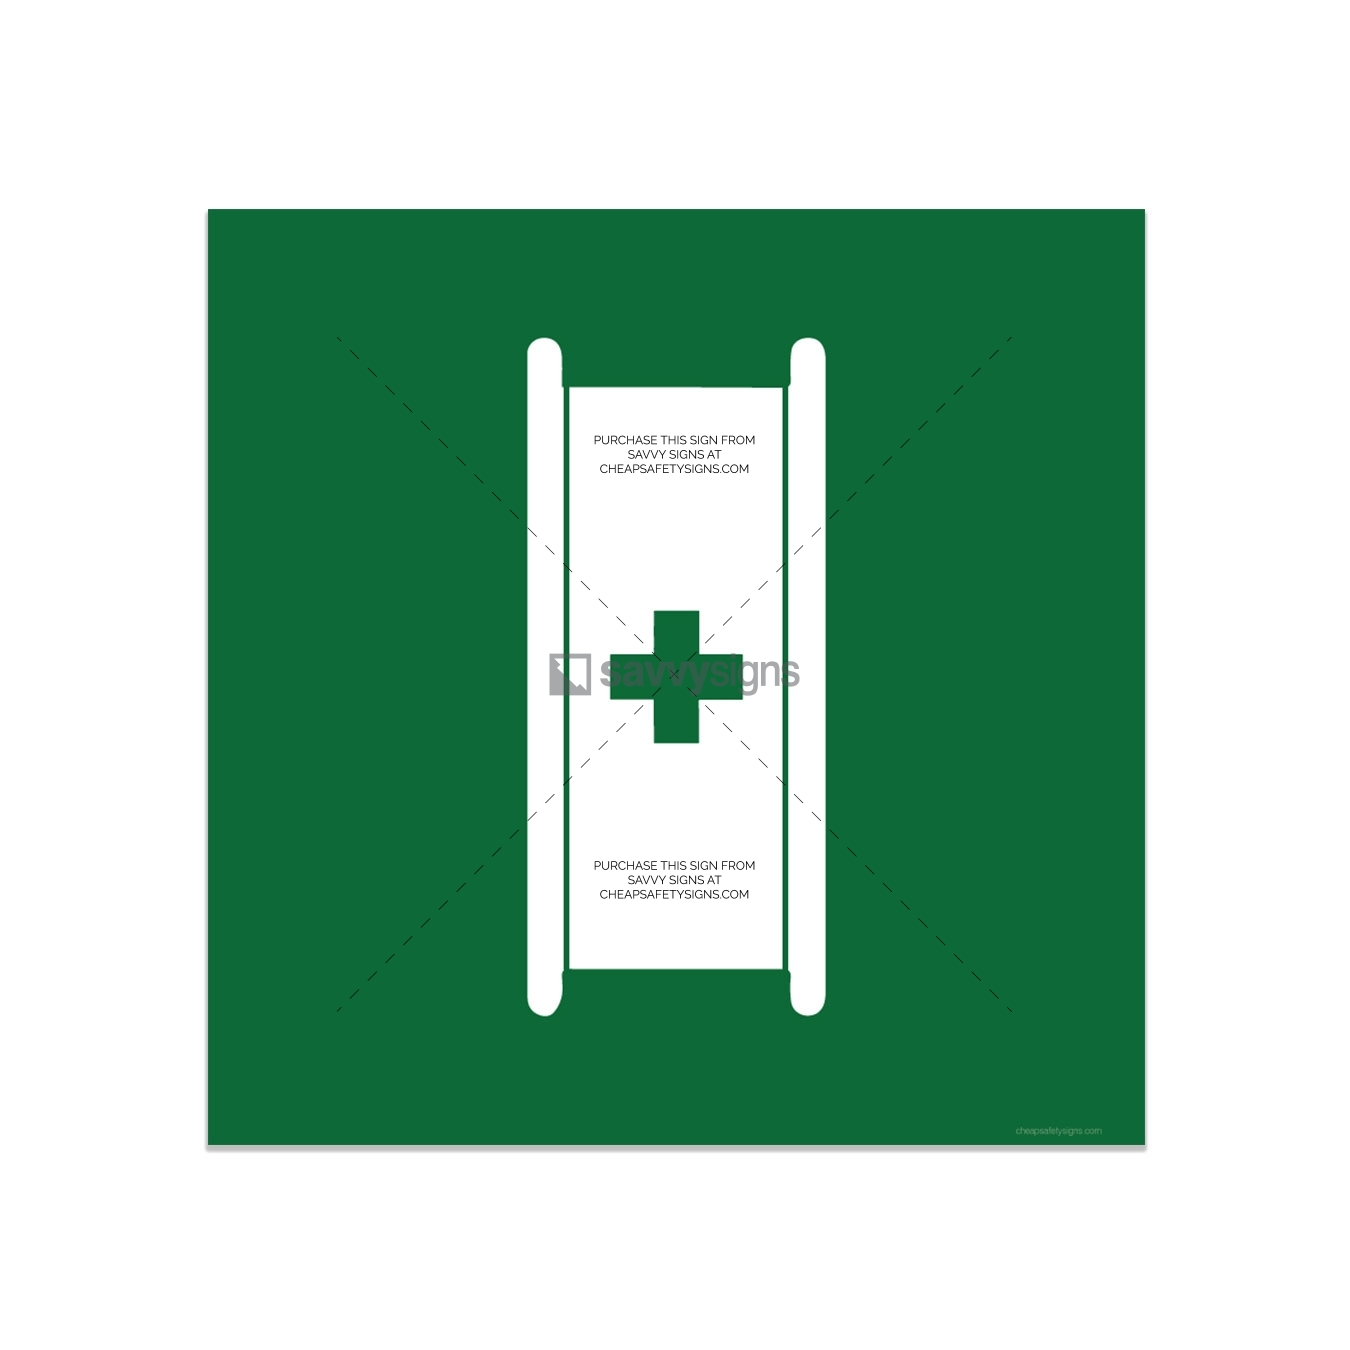 SSEME3068-EMERGENCY-Pictogram-Workplace-Safety-Signs_Savvy-Signs_v3